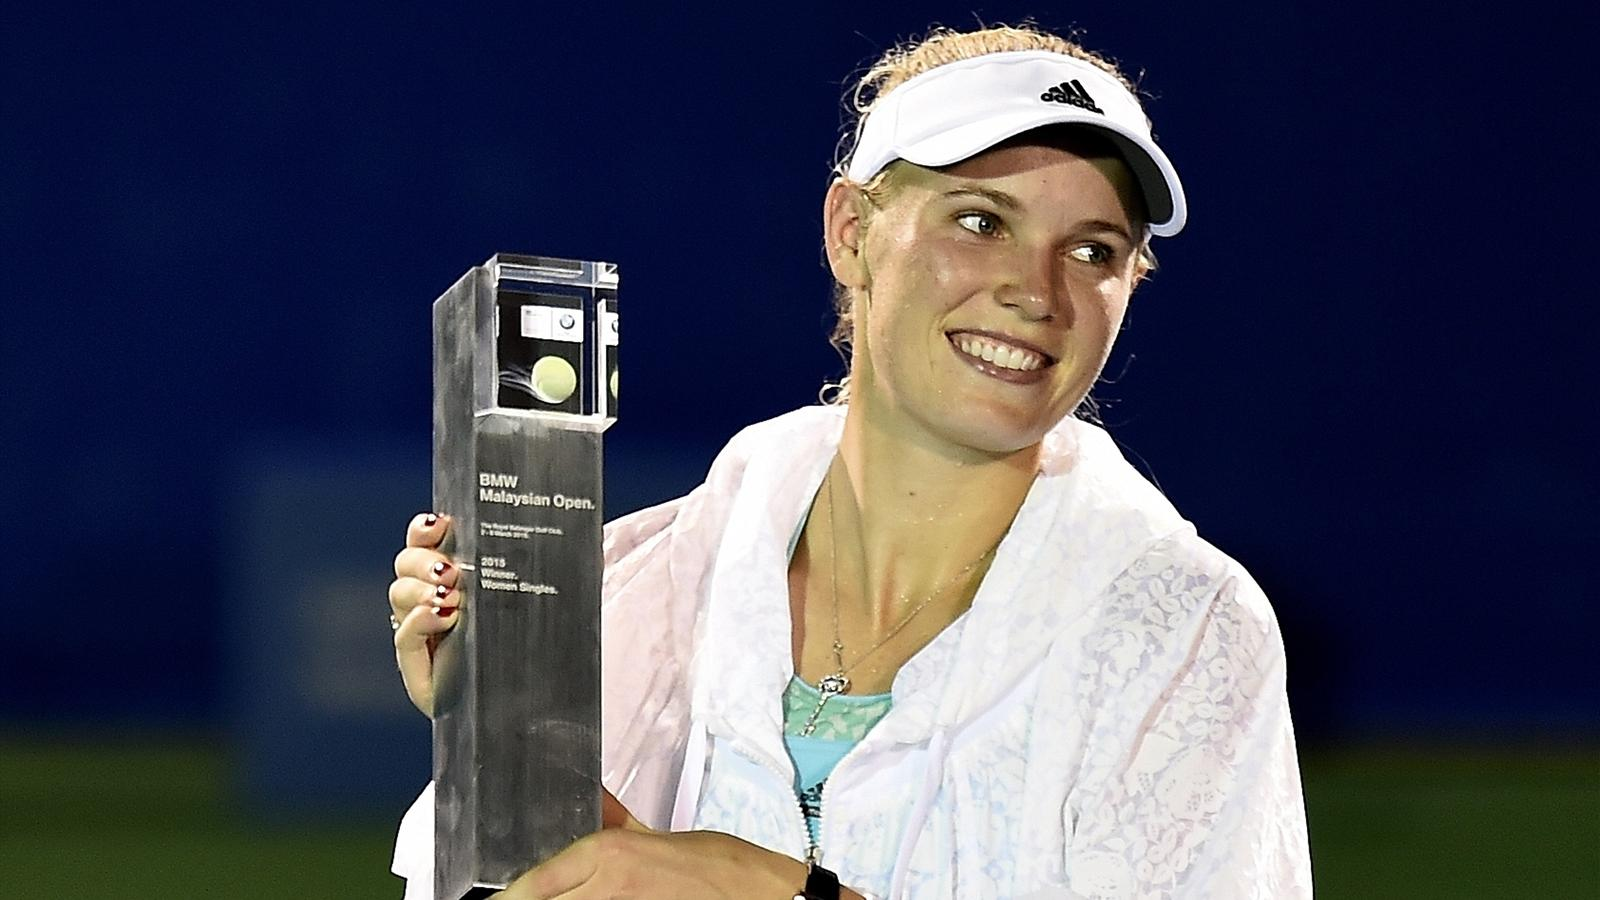 Caroline Wozniacki of Denmark poses with the trophy after defeating Romania's Alexandra Dulgheru during their women's singles final match of the 2015 BMW Malaysia Open tennis tournament in Kuala Lumpur on March 8, 2015.